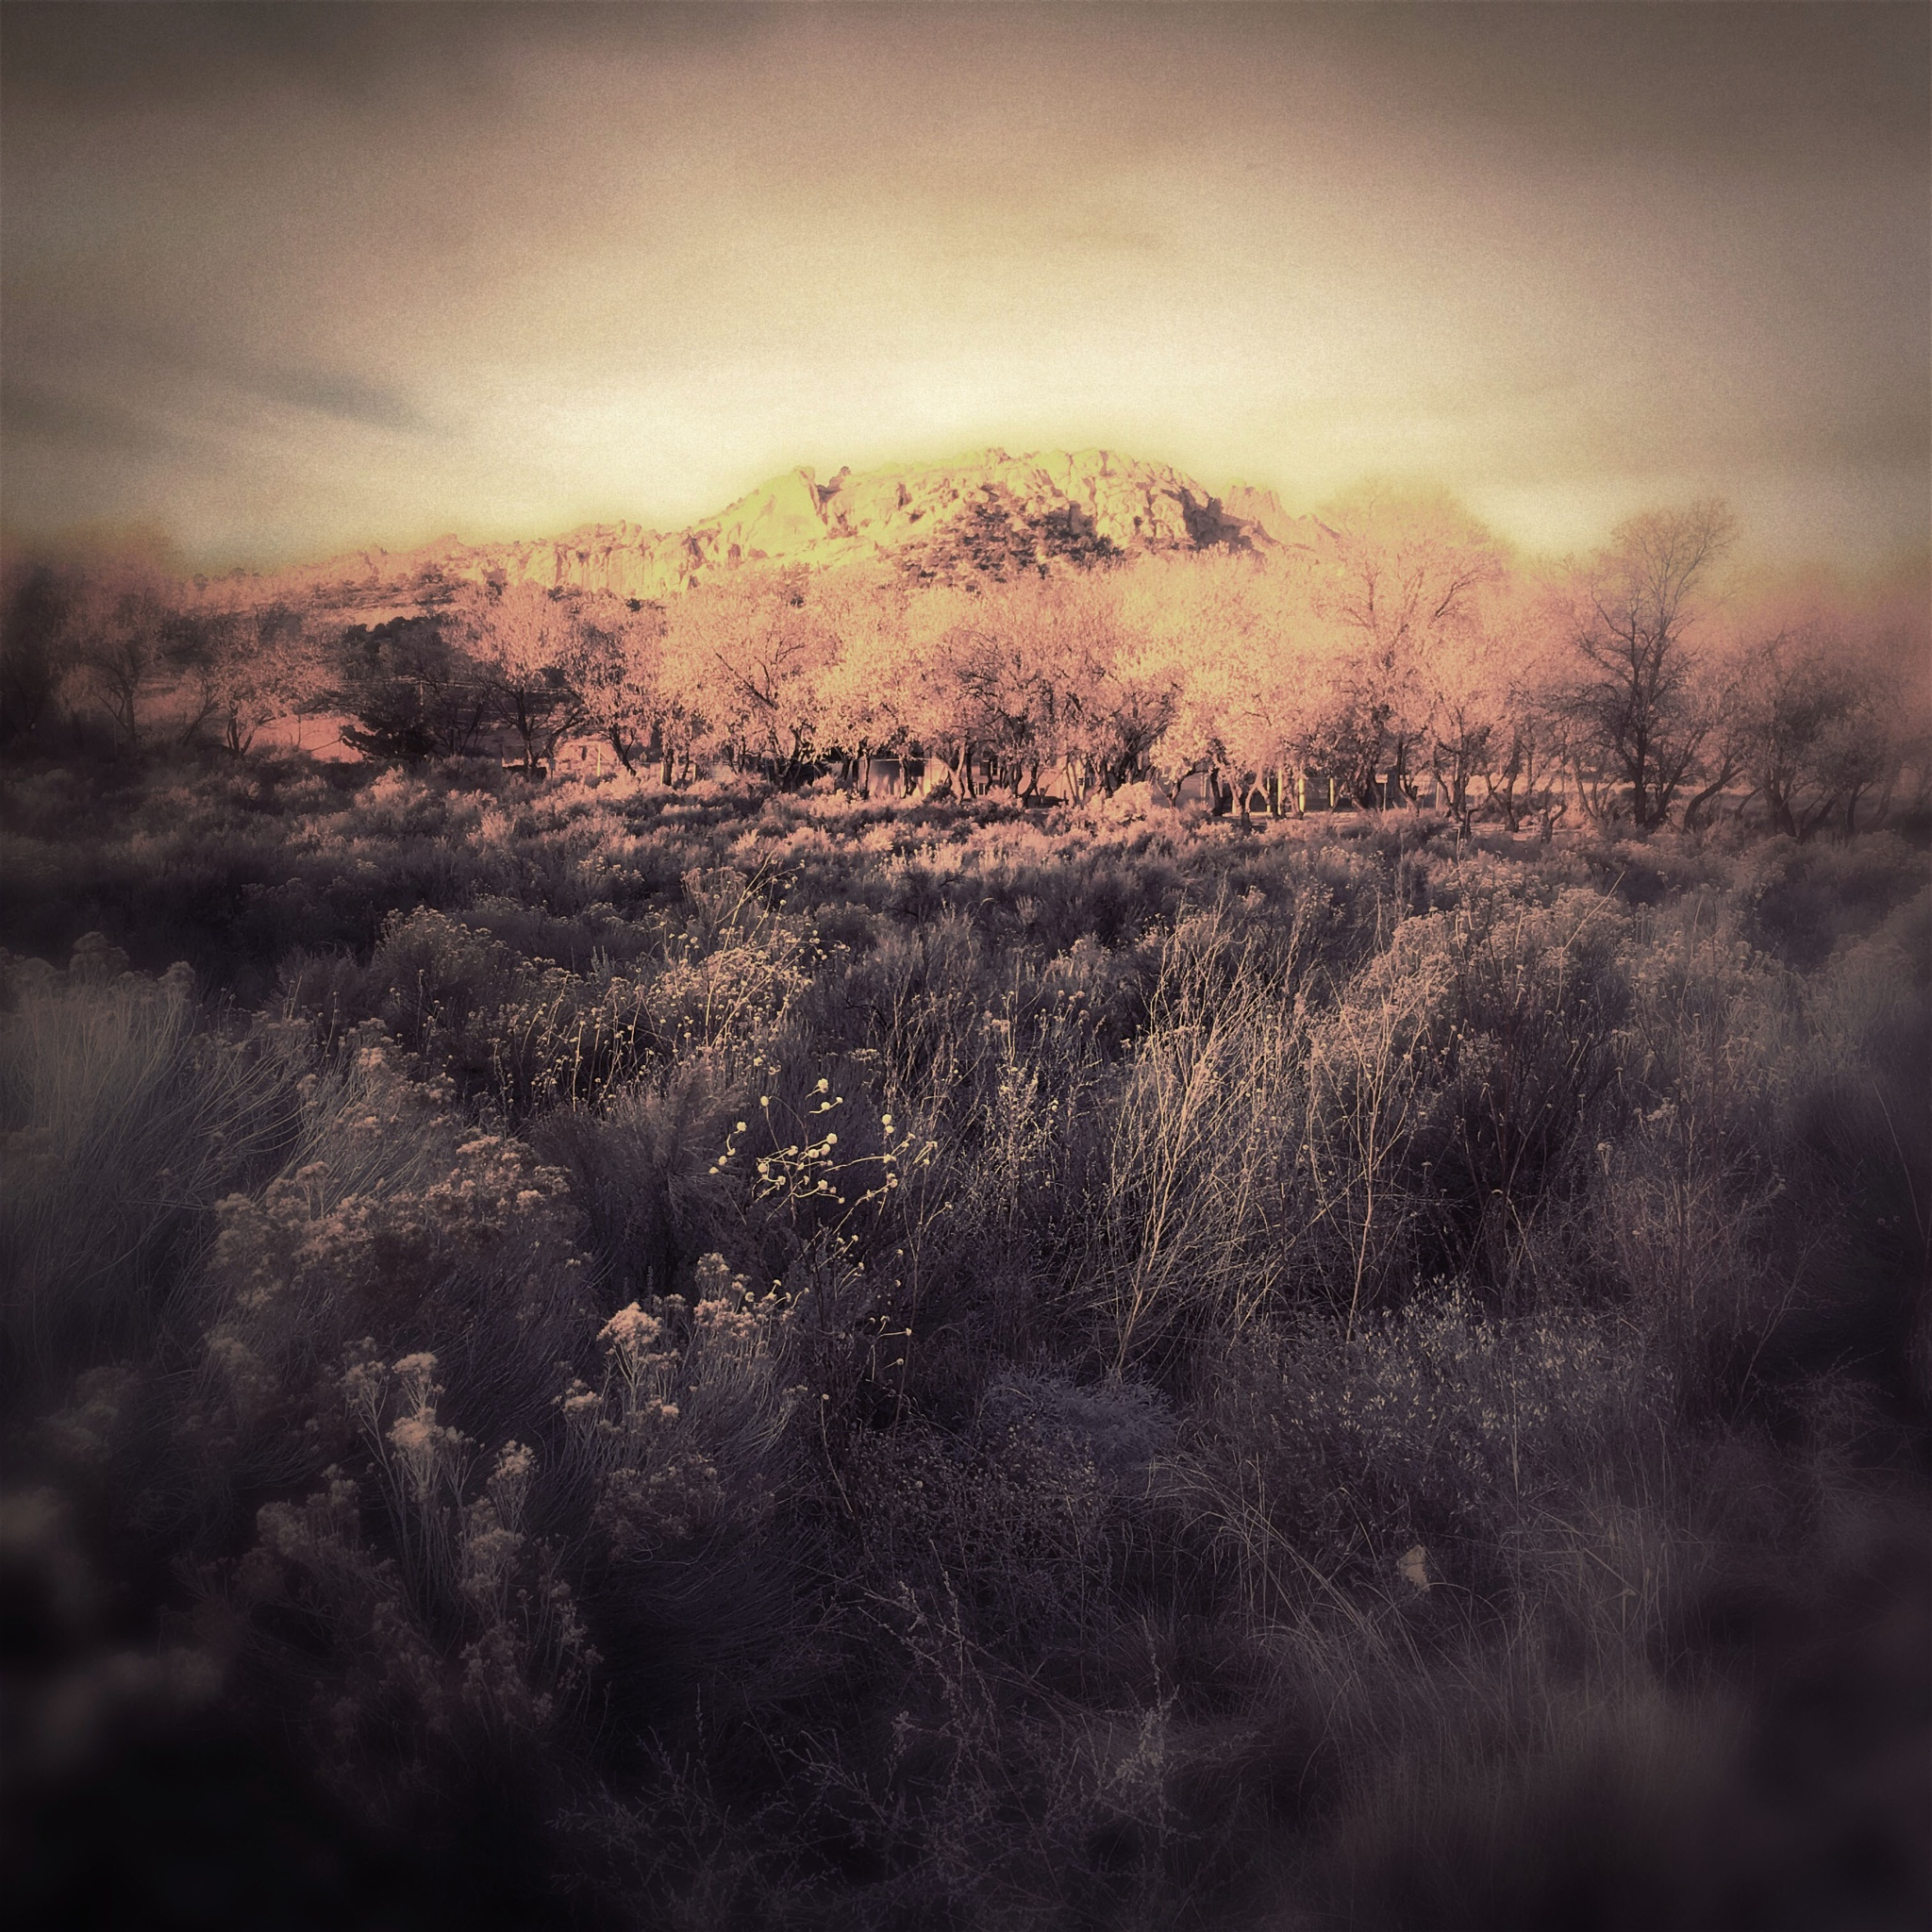 Hipstamatic Sunrise by Jeff Jones